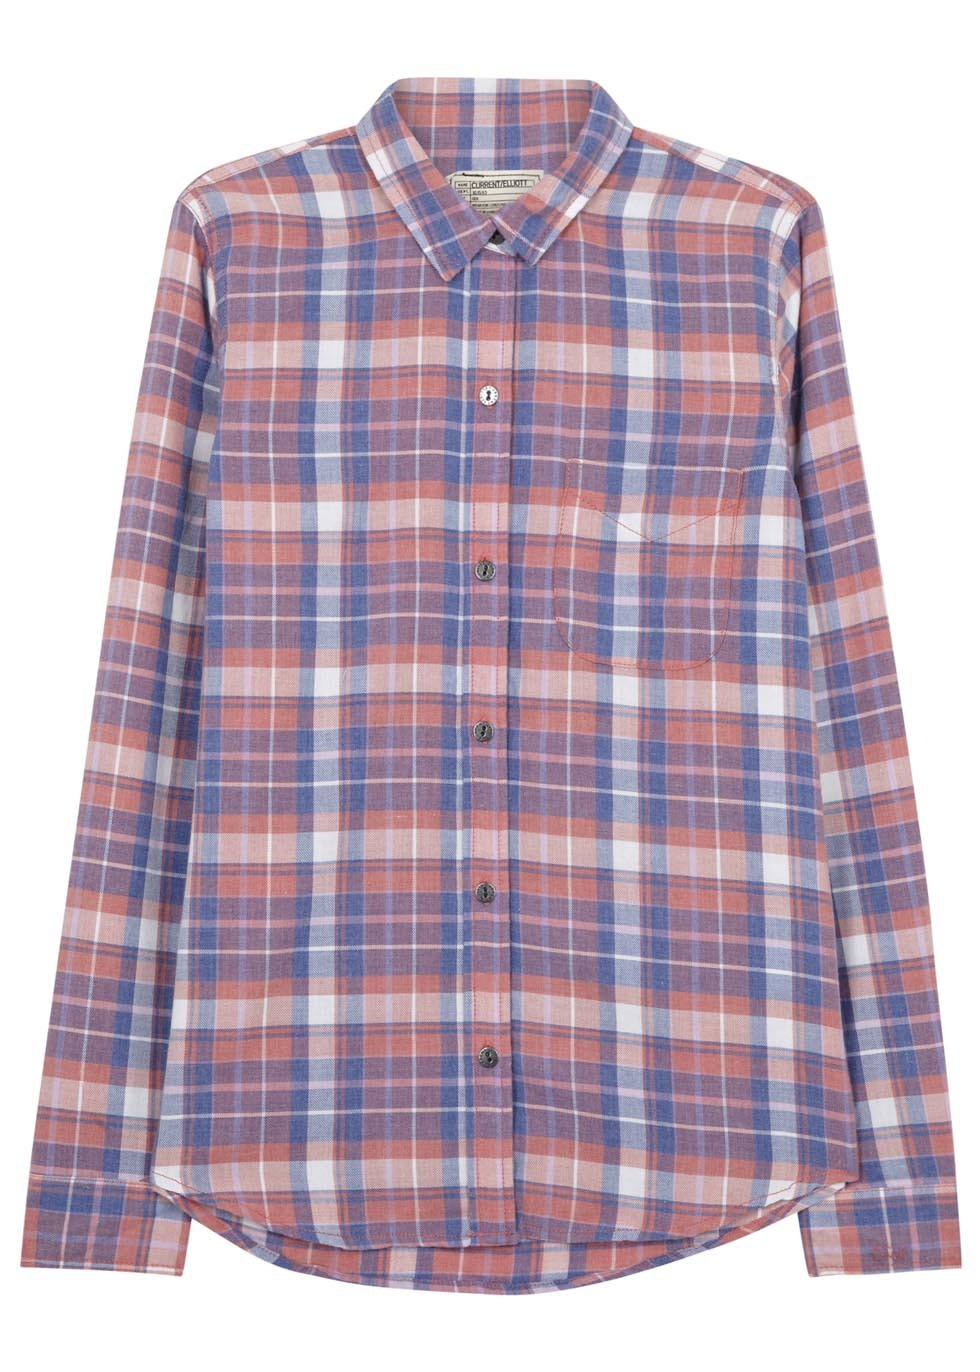 Stardust Plaid Flannel Shirt - neckline: shirt collar/peter pan/zip with opening; pattern: checked/gingham; style: shirt; occasions: casual, creative work; length: standard; fit: body skimming; predominant colour: multicoloured; sleeve length: long sleeve; sleeve style: standard; texture group: cotton feel fabrics; season: s/s 2015; multicoloured: multicoloured; wardrobe: highlight